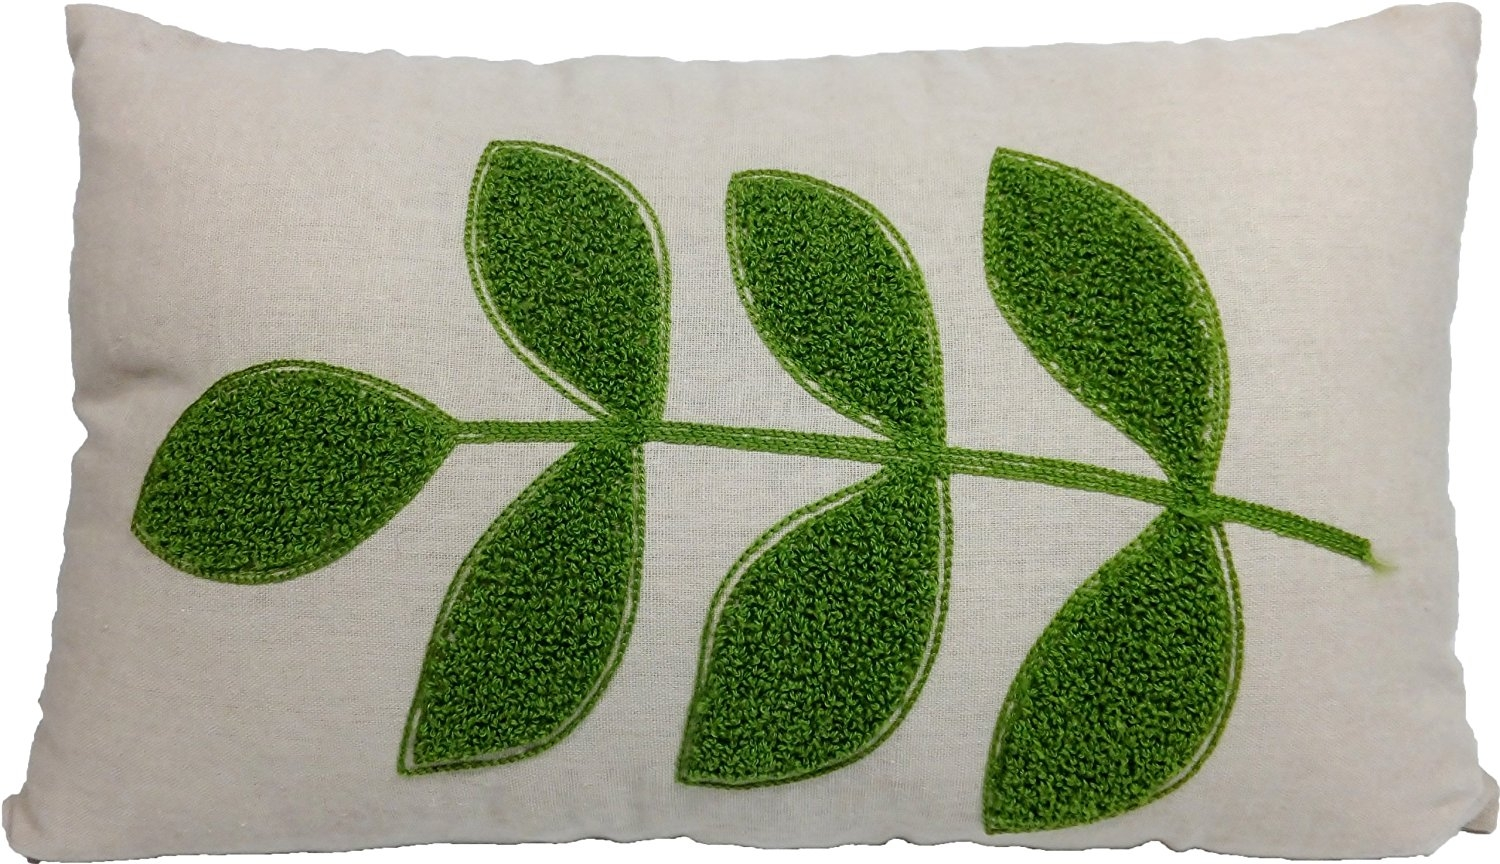 - I love this cute leaf embroidered pillow!  And his inexpensive price is a painless way to add just a touch of 70's inspired plant pattern.